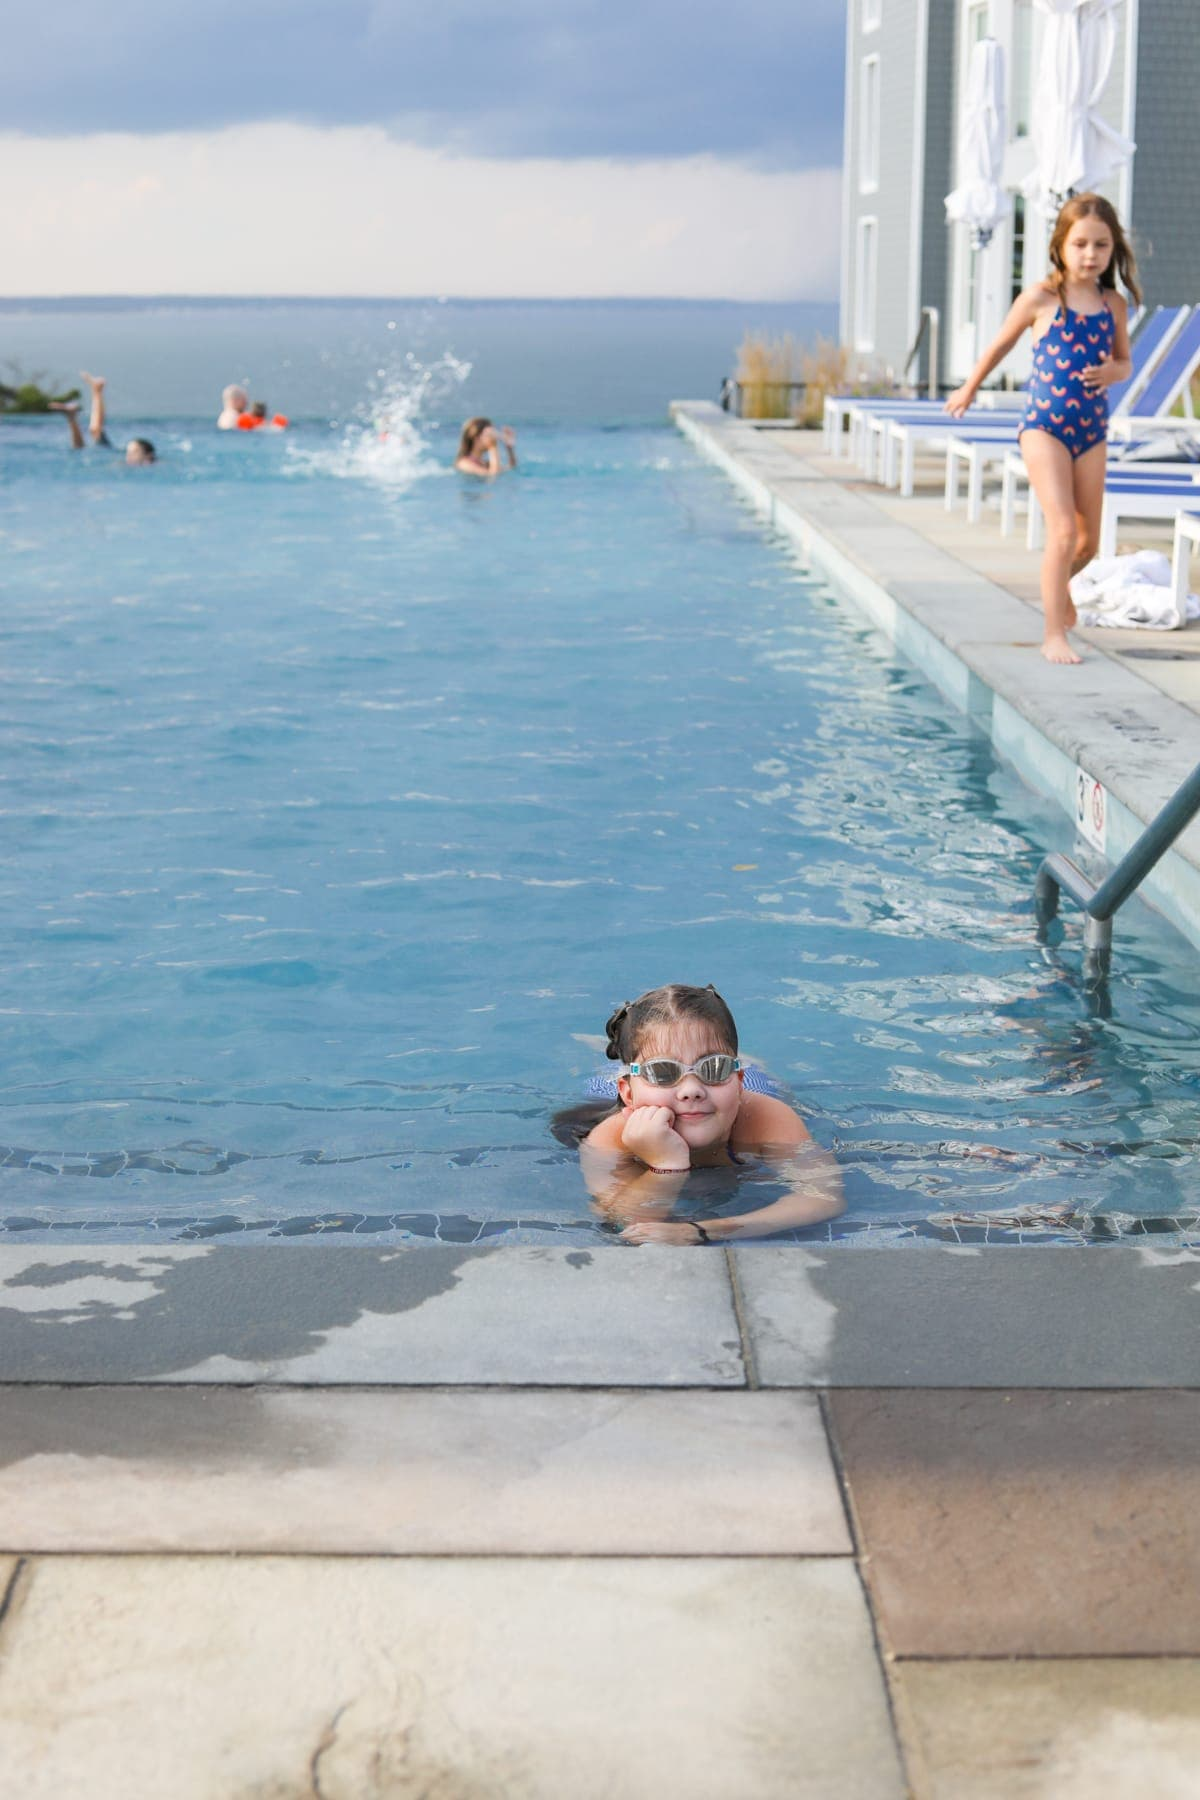 A child swimming in a pool of water